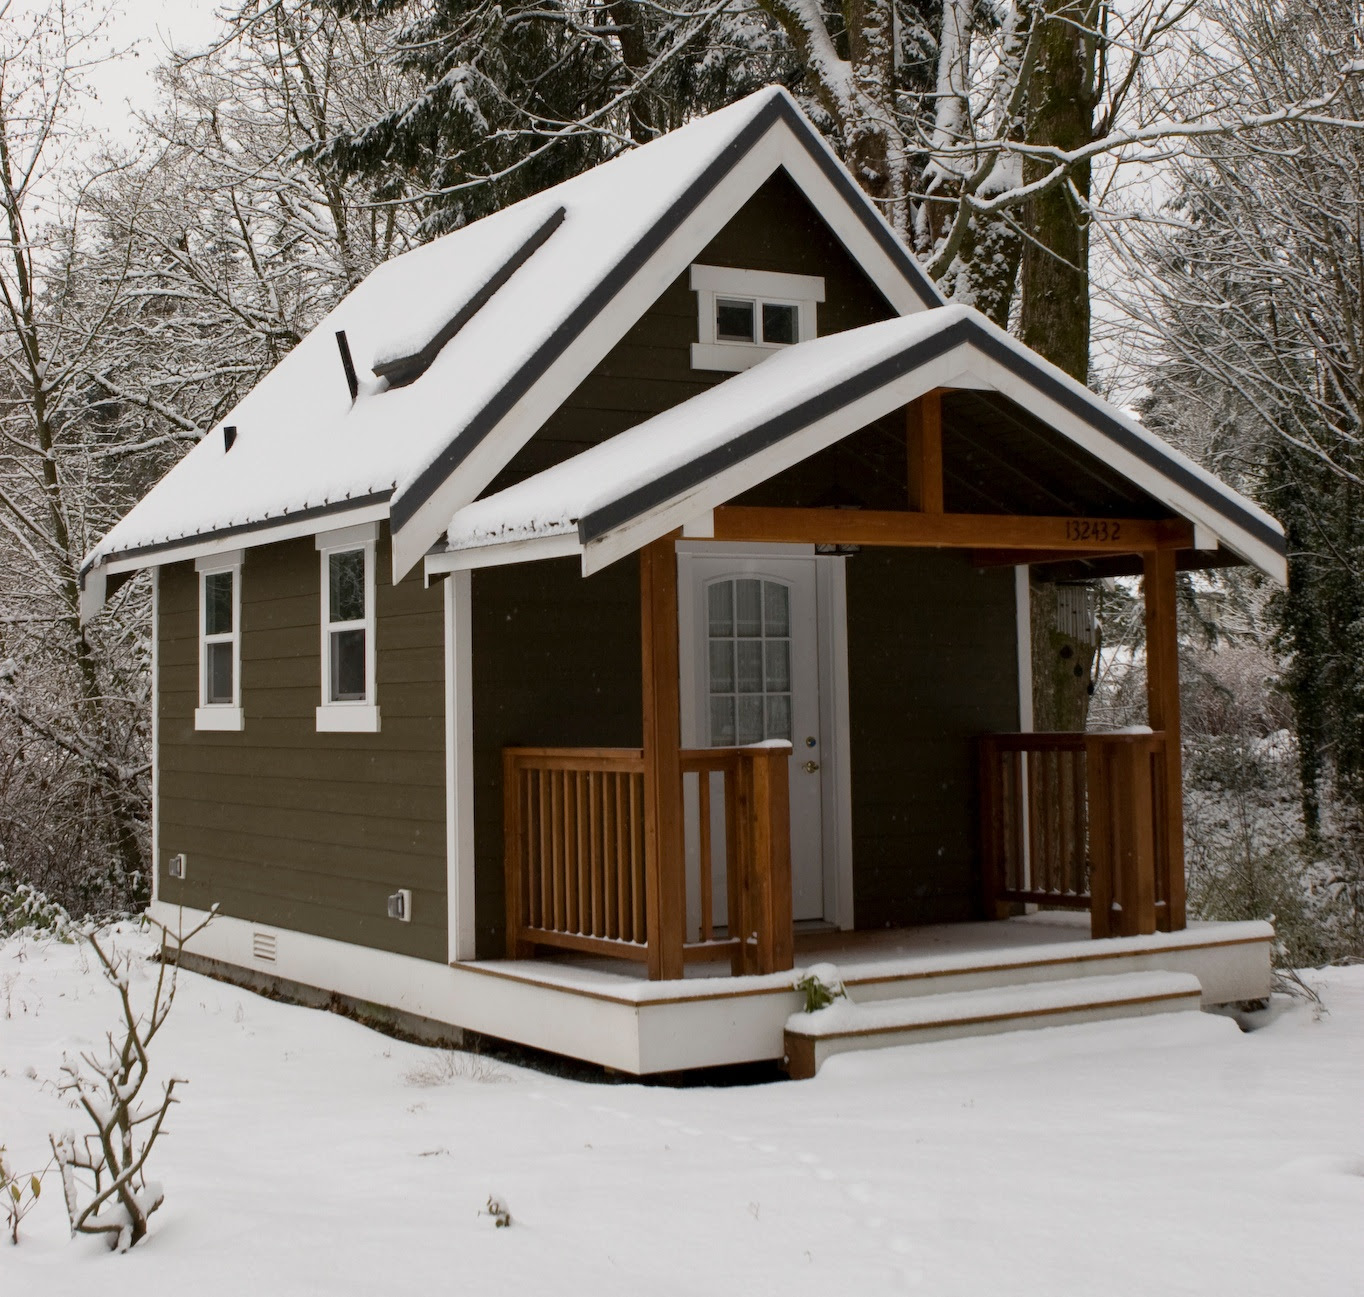 The Tiny House Movement - Part 1